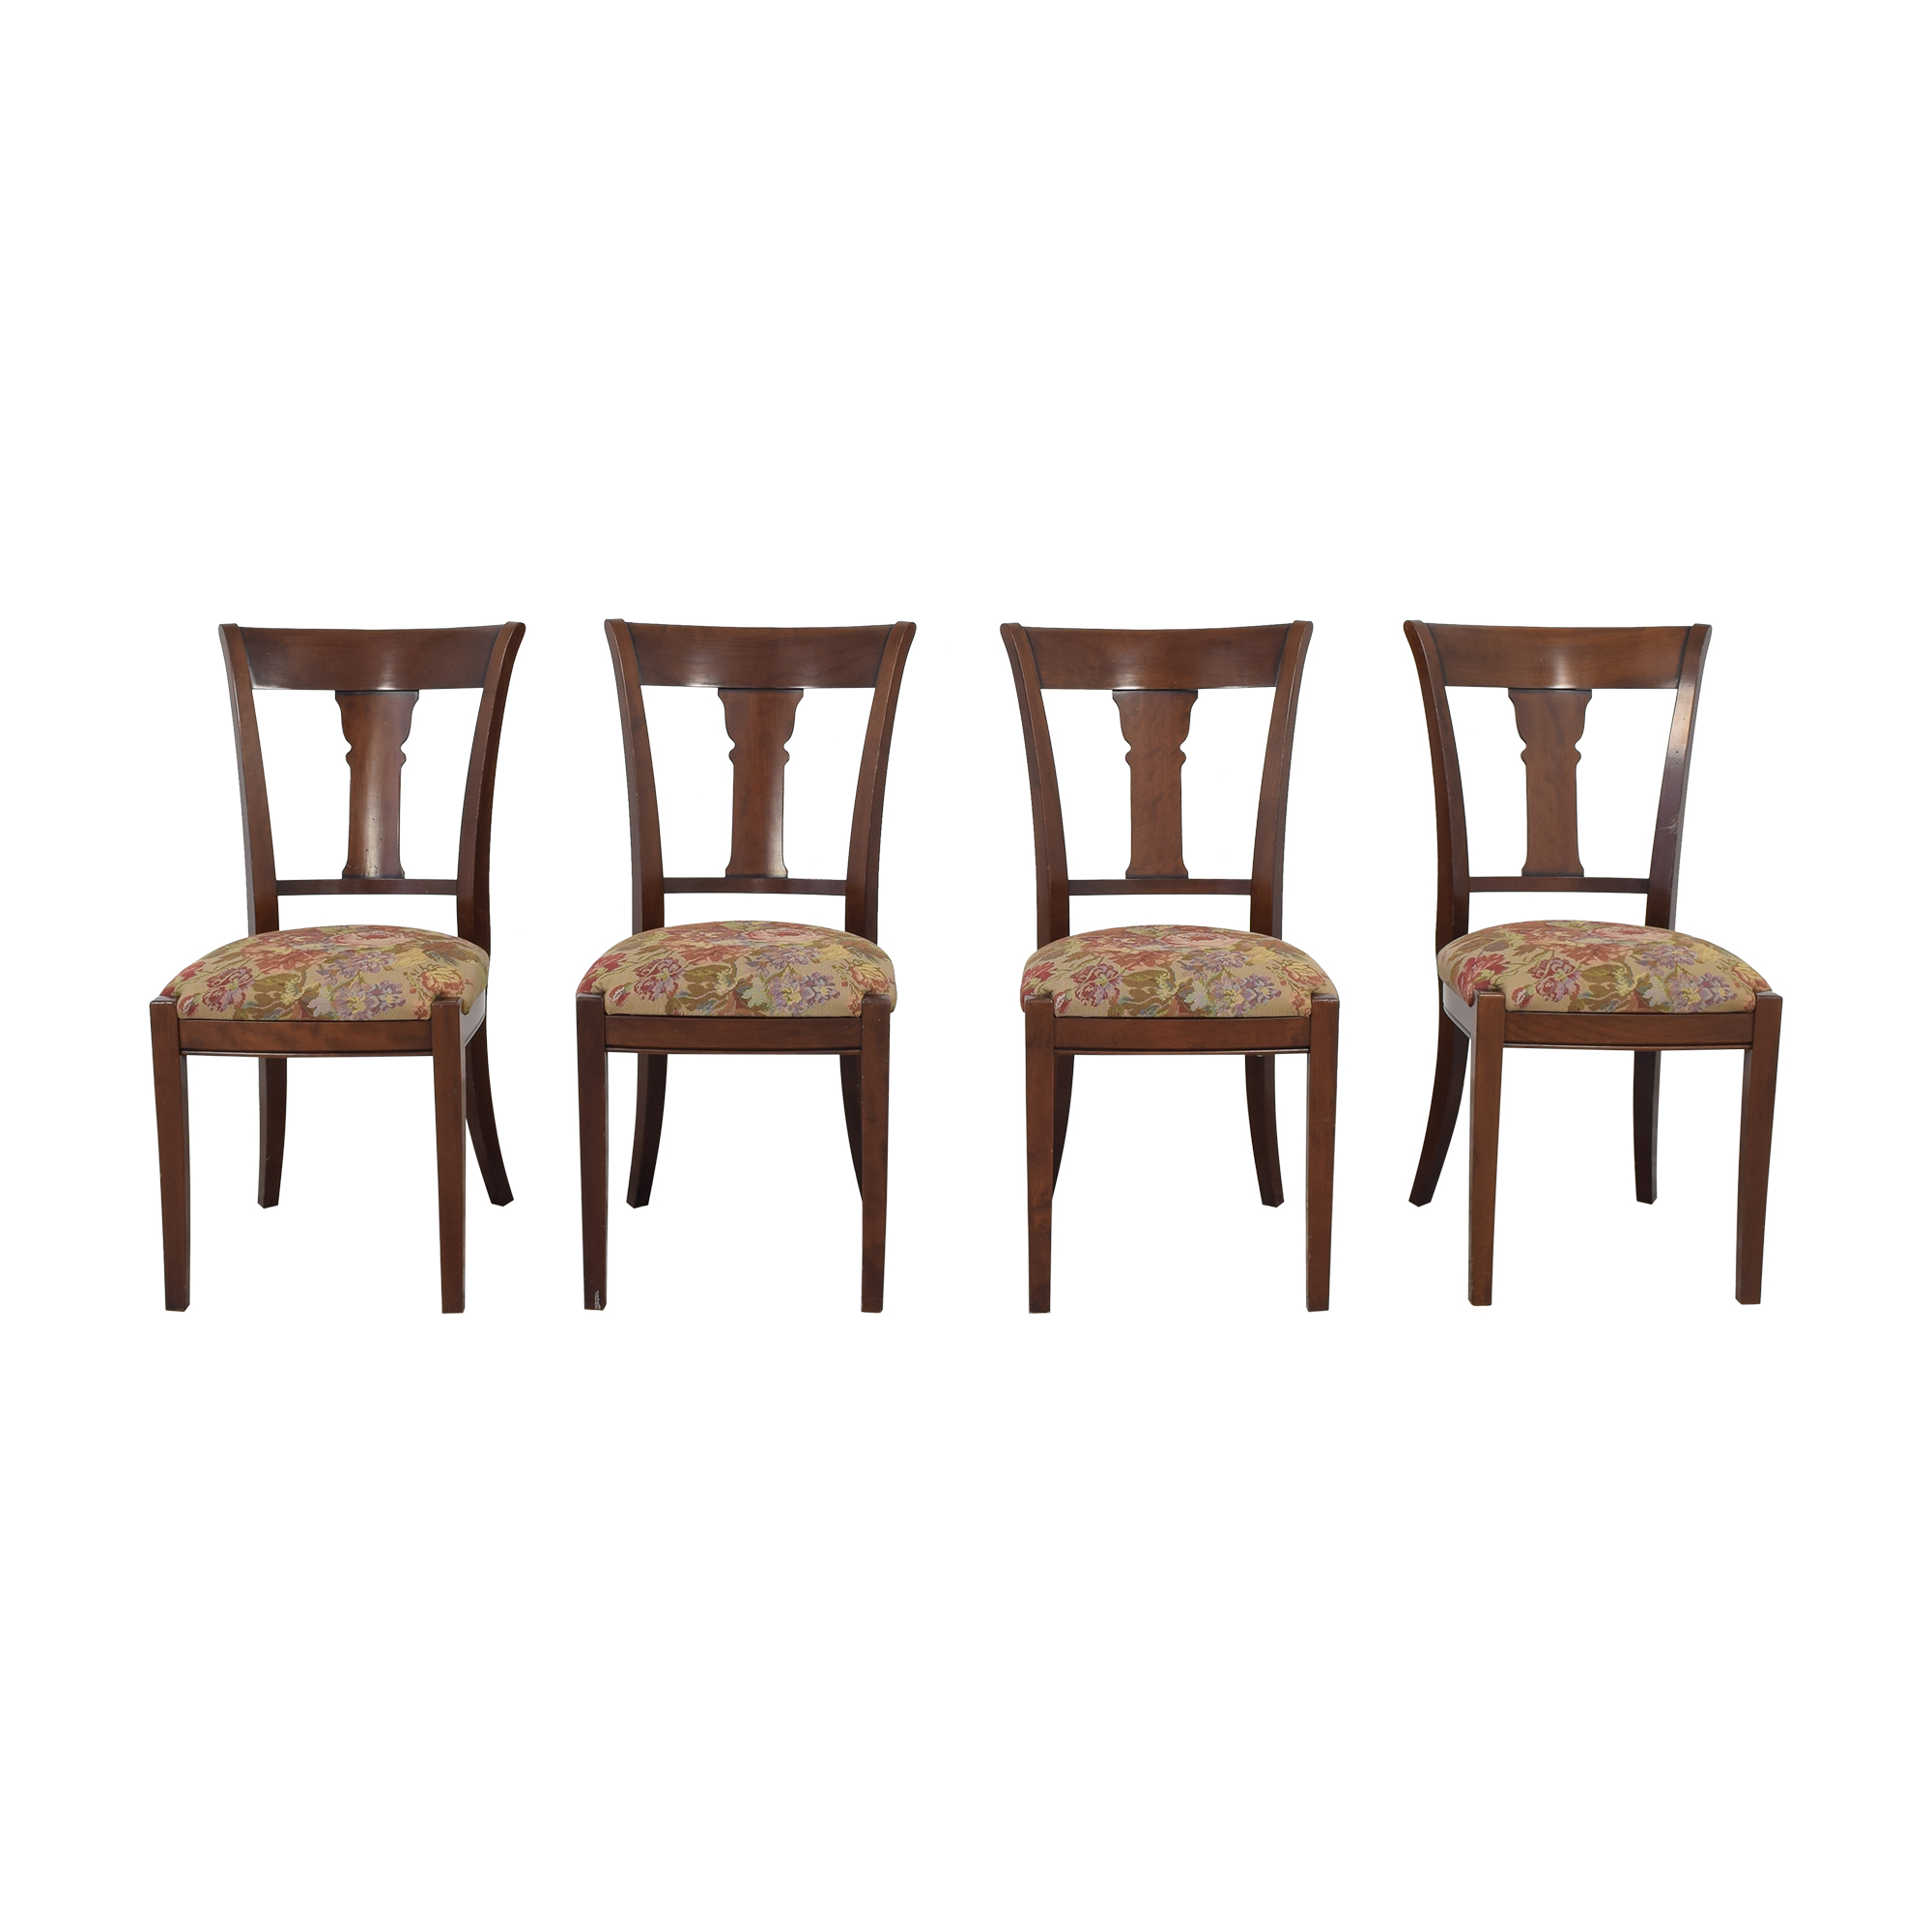 Grange Grange Upholstered Dining Chairs dimensions